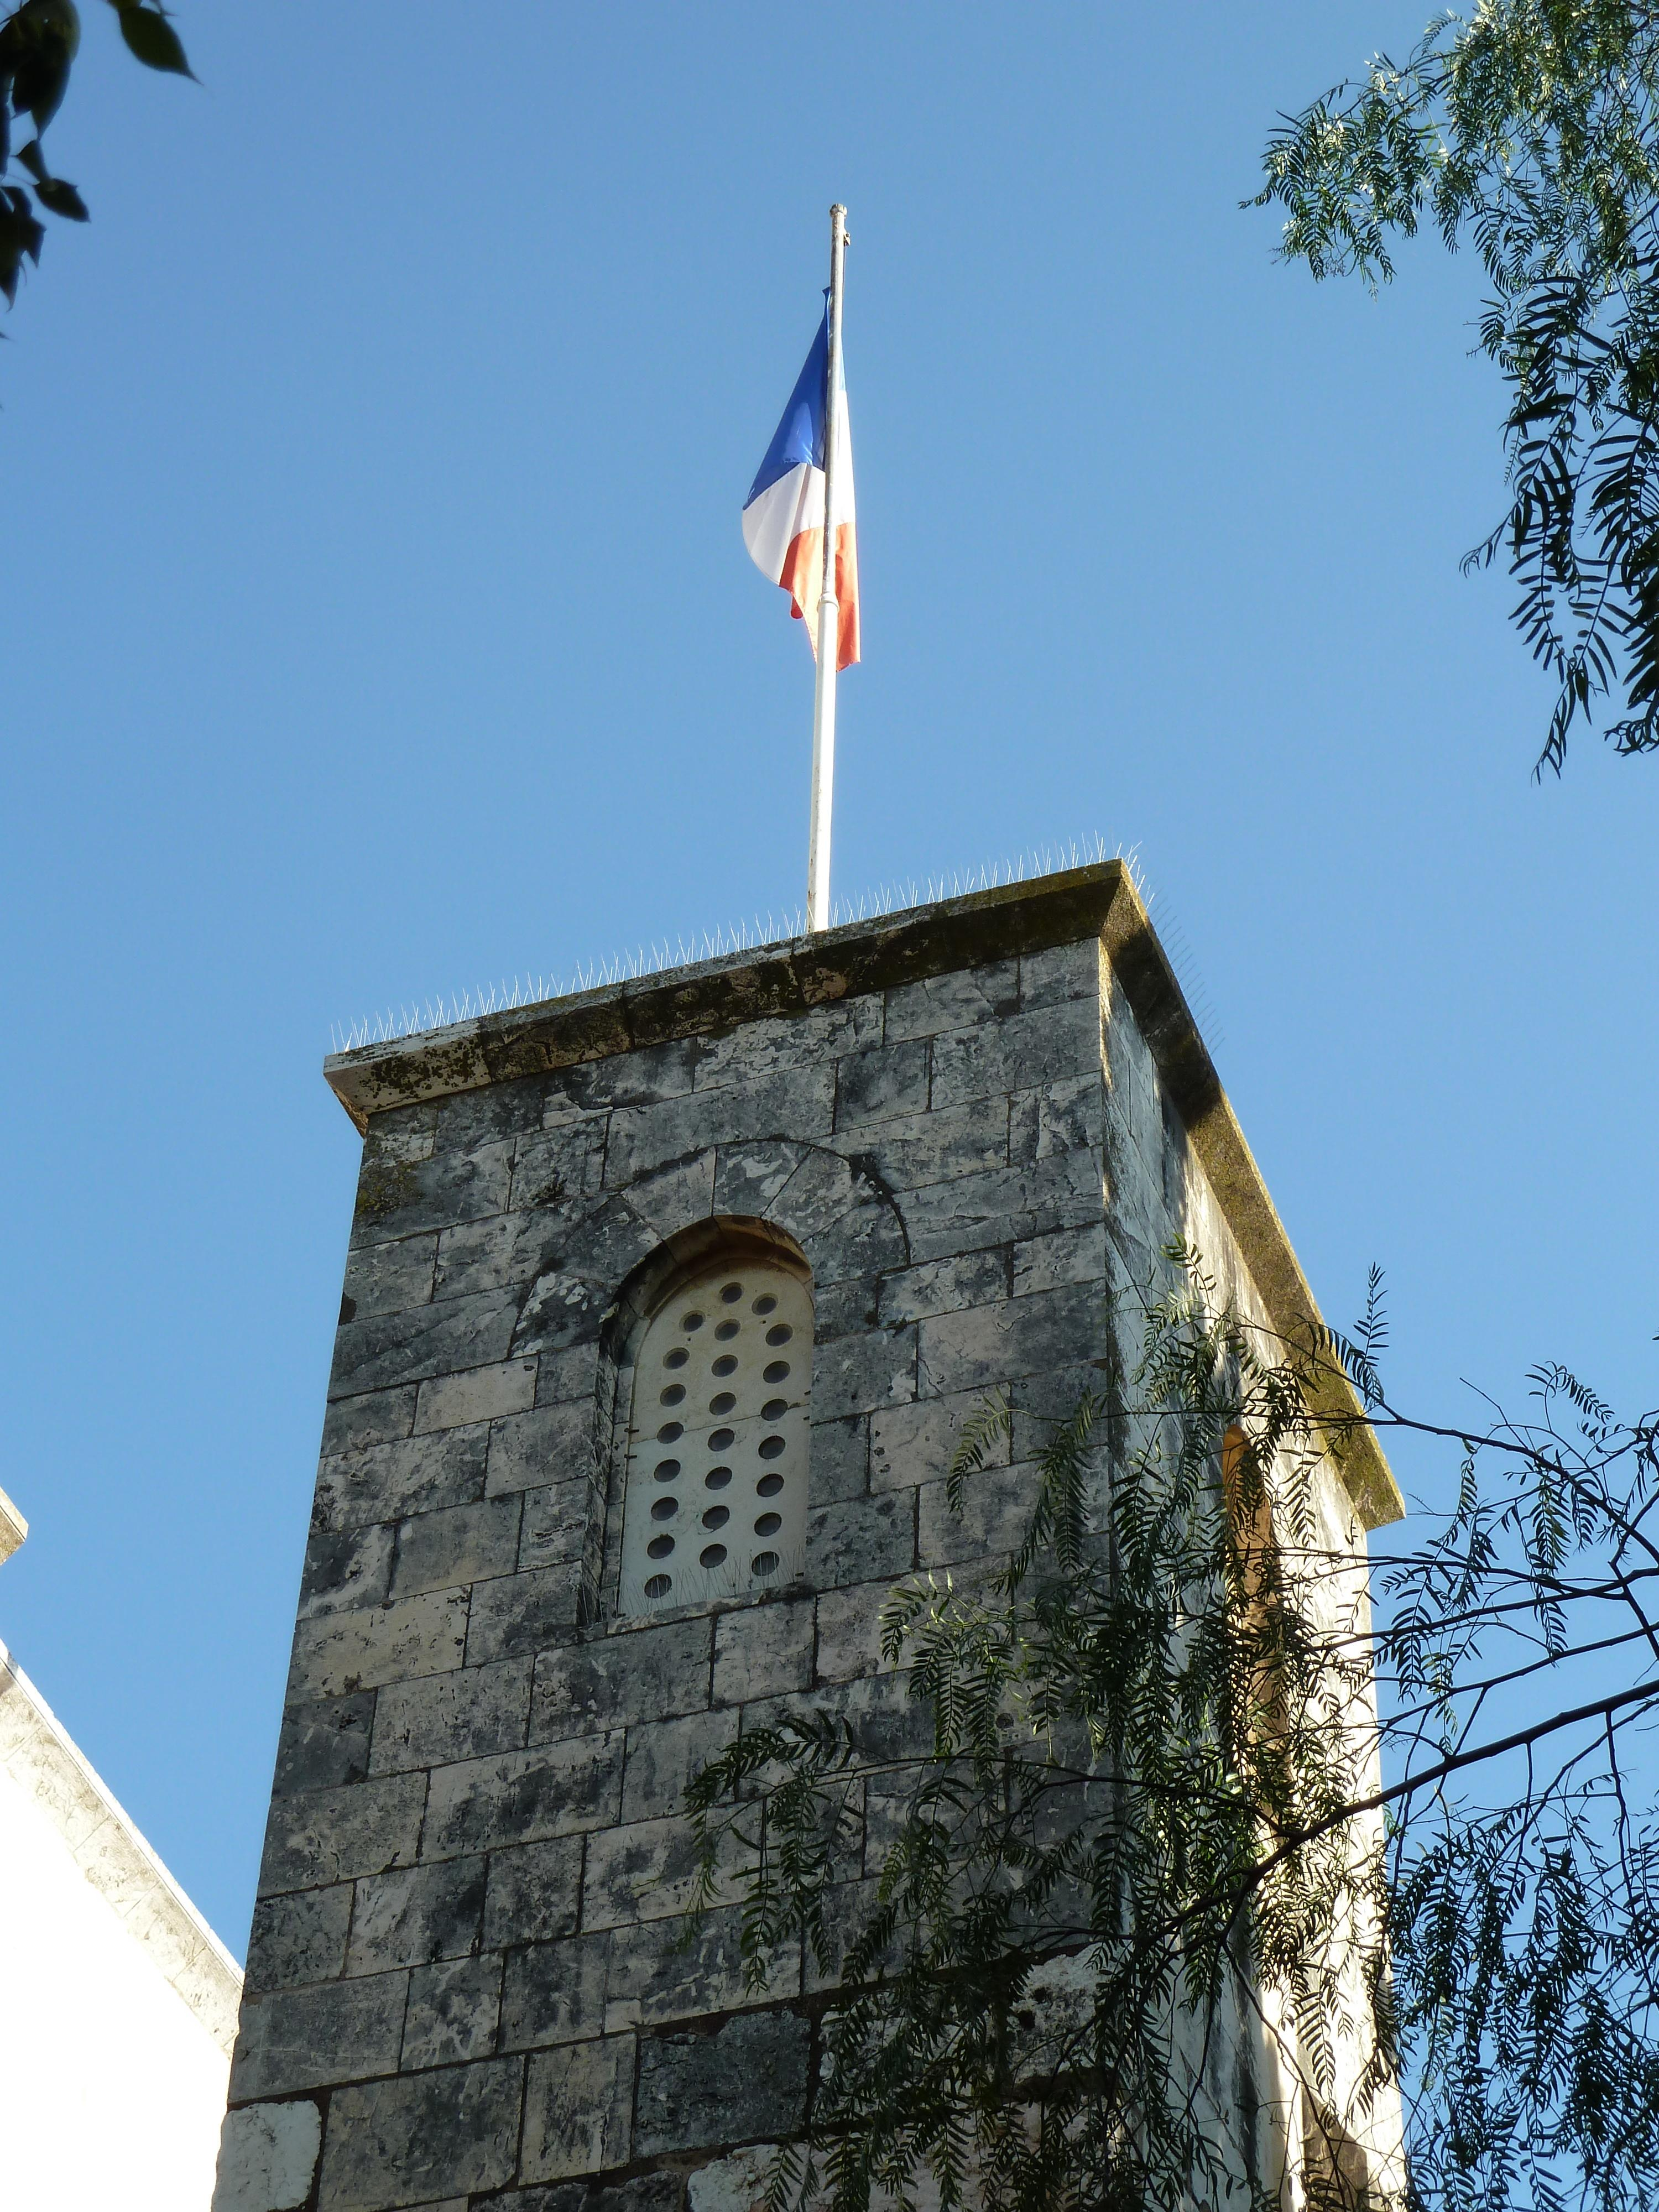 http://upload.wikimedia.org/wikipedia/commons/b/b3/Old_Jerusalem_Saint-Anne_church_french_flag.jpg